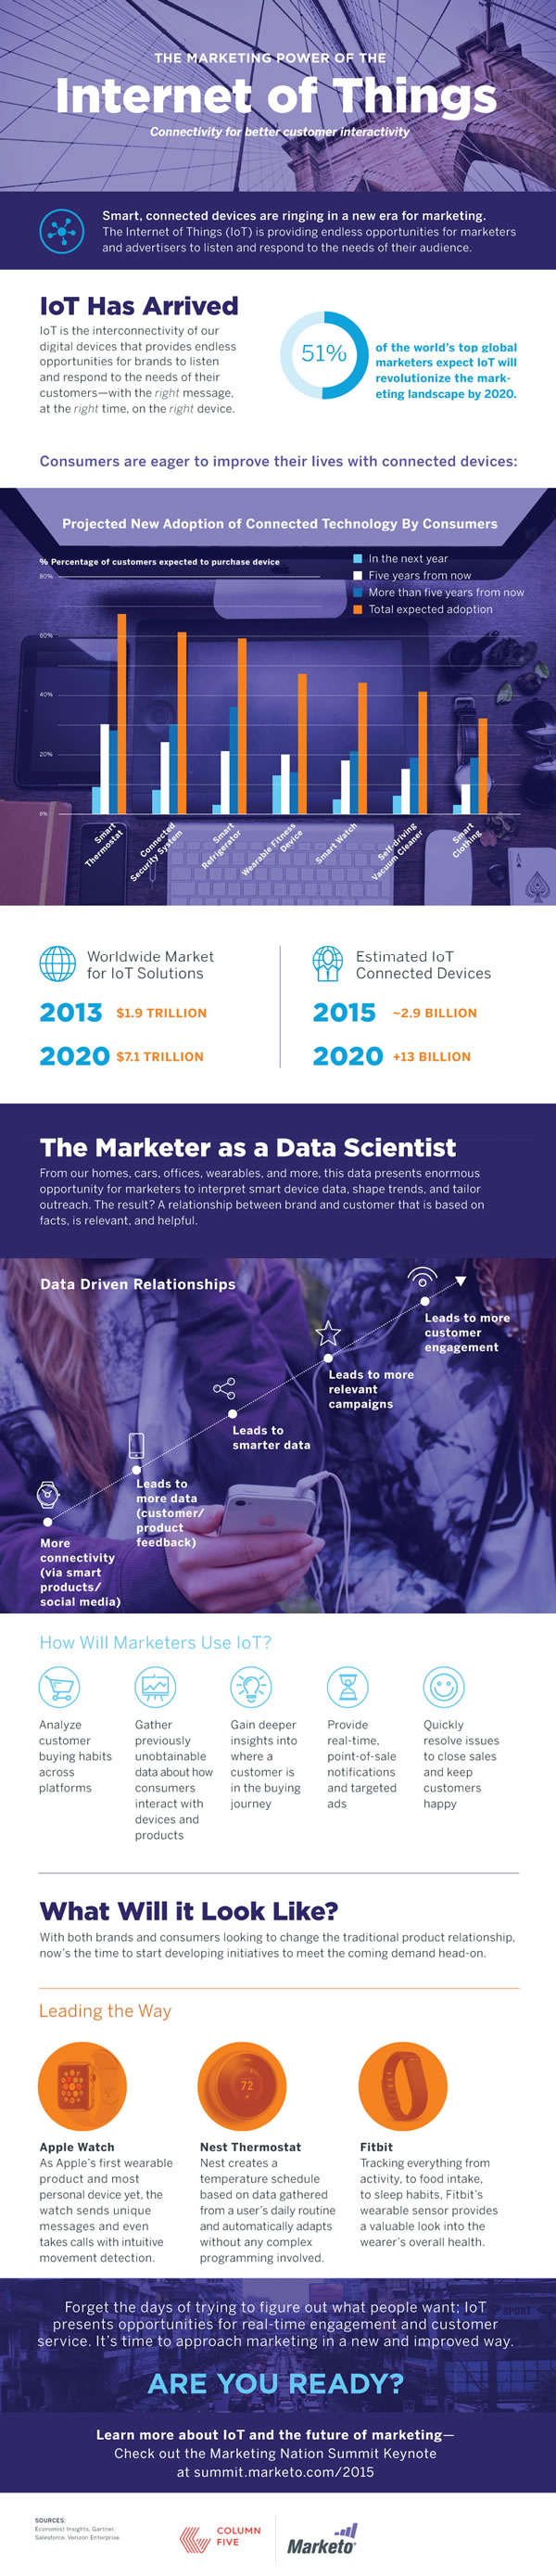 Marketing power of the Internet of Things - infographic by Marketo